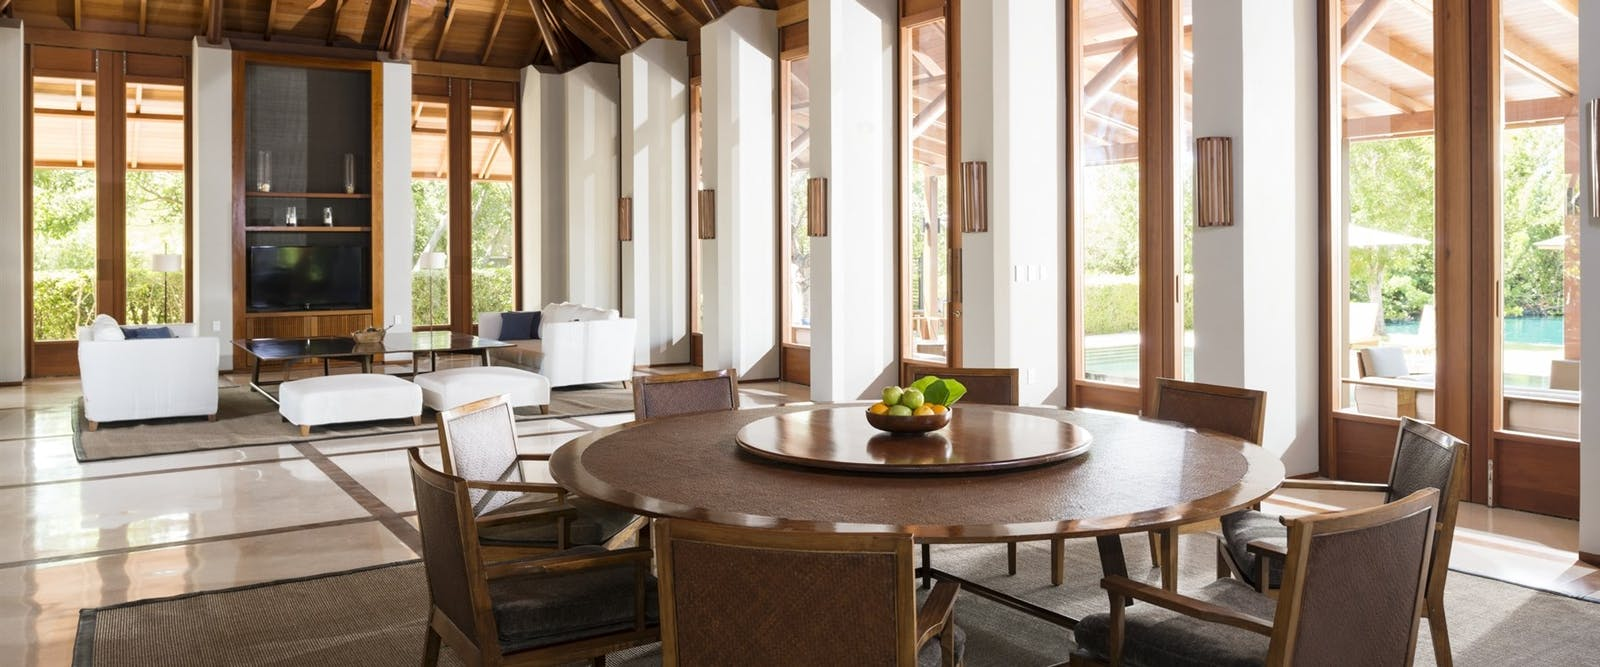 Living Area at Amanyara, Turks and Caicos